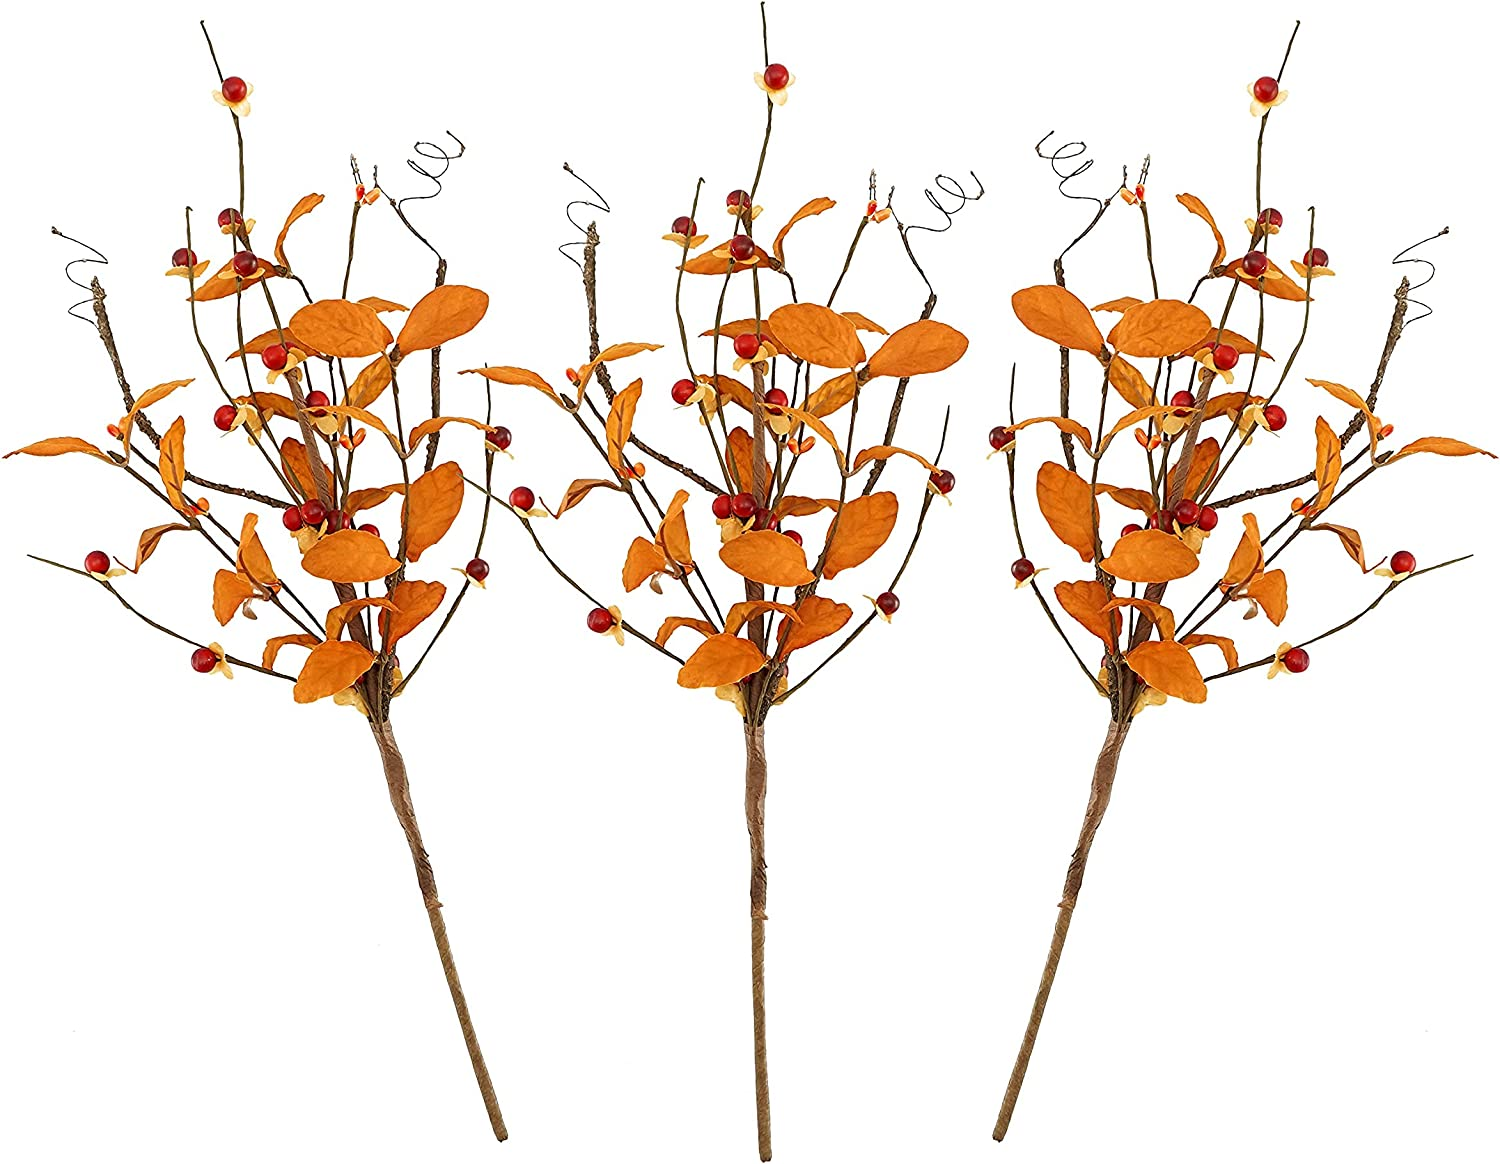 18 inches 3 Pieces Fall Pick, Leaves Mixed Orange Berries and Curly twig Pick Fall Decorations vase Office Home and Kitchen Decor